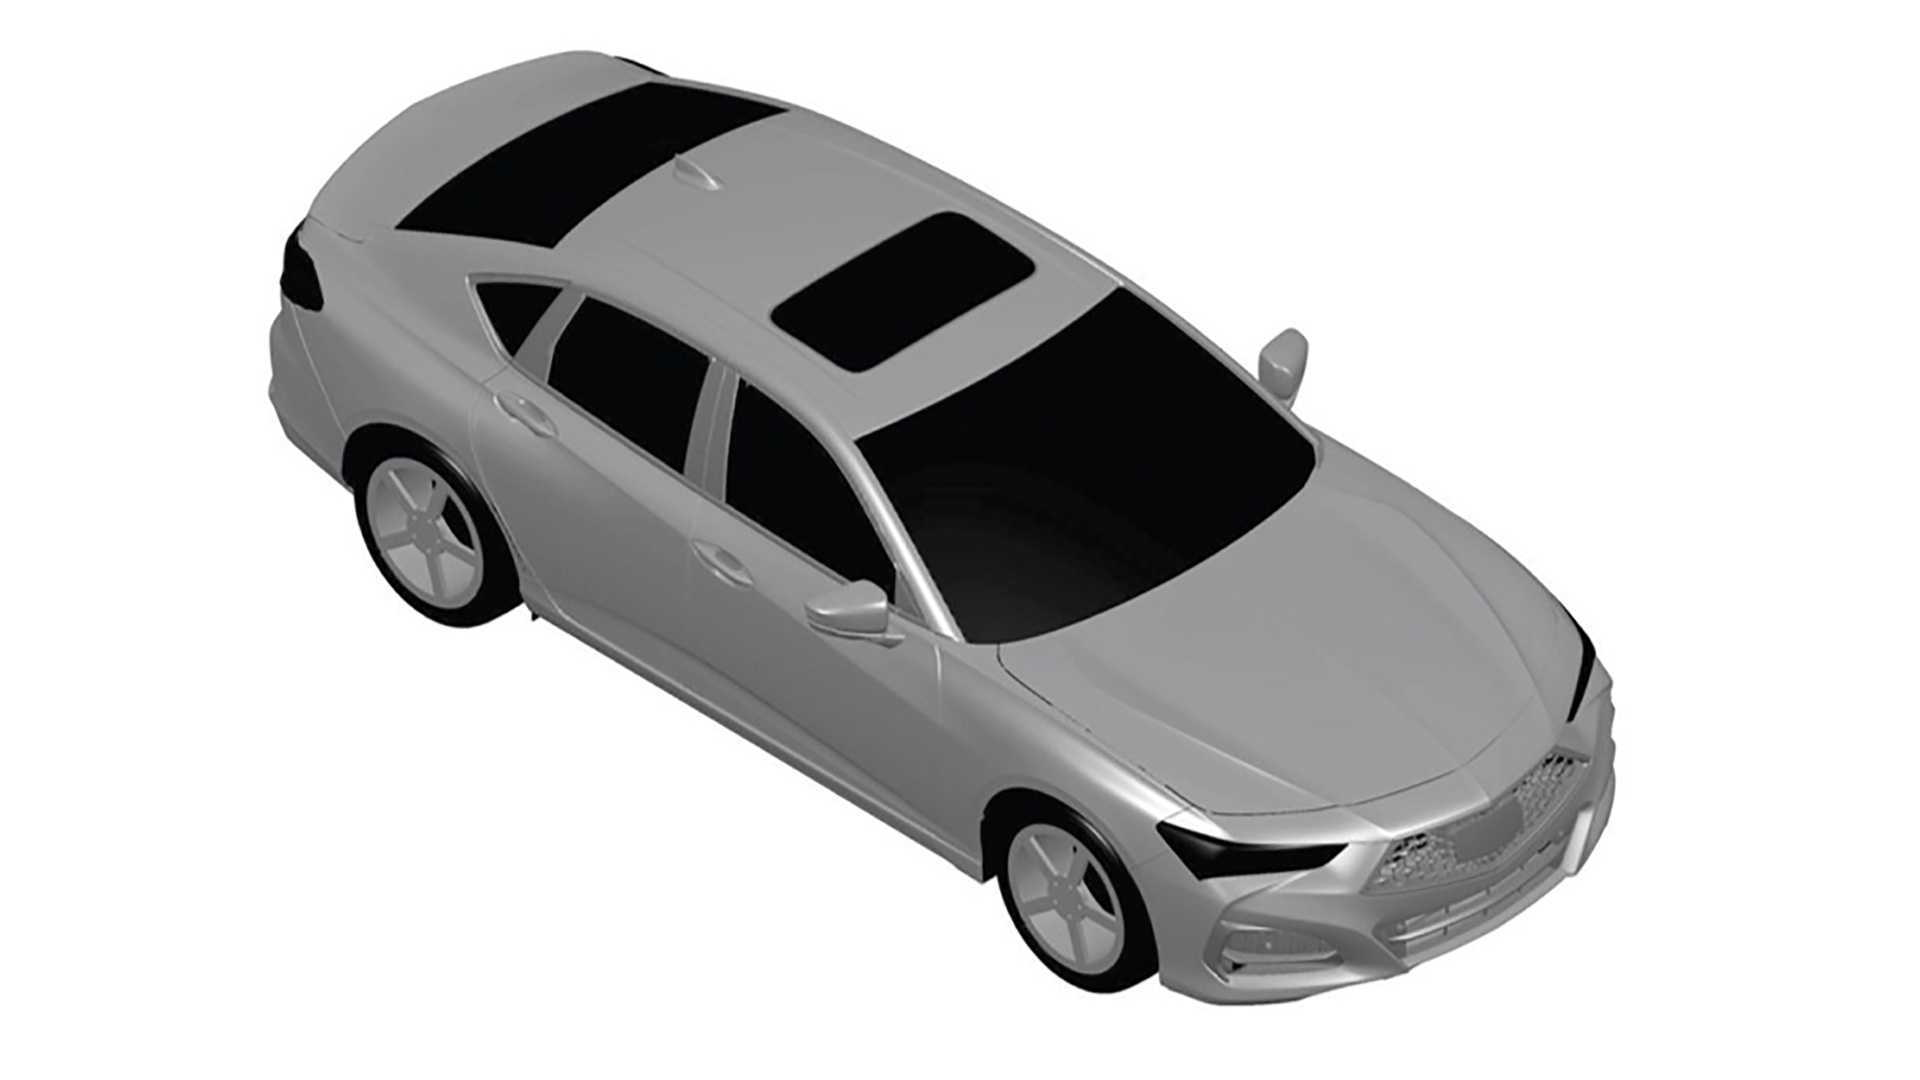 Alleged 2021 Acura TLX patent drawings - Photo credit: Worldscoop Forums